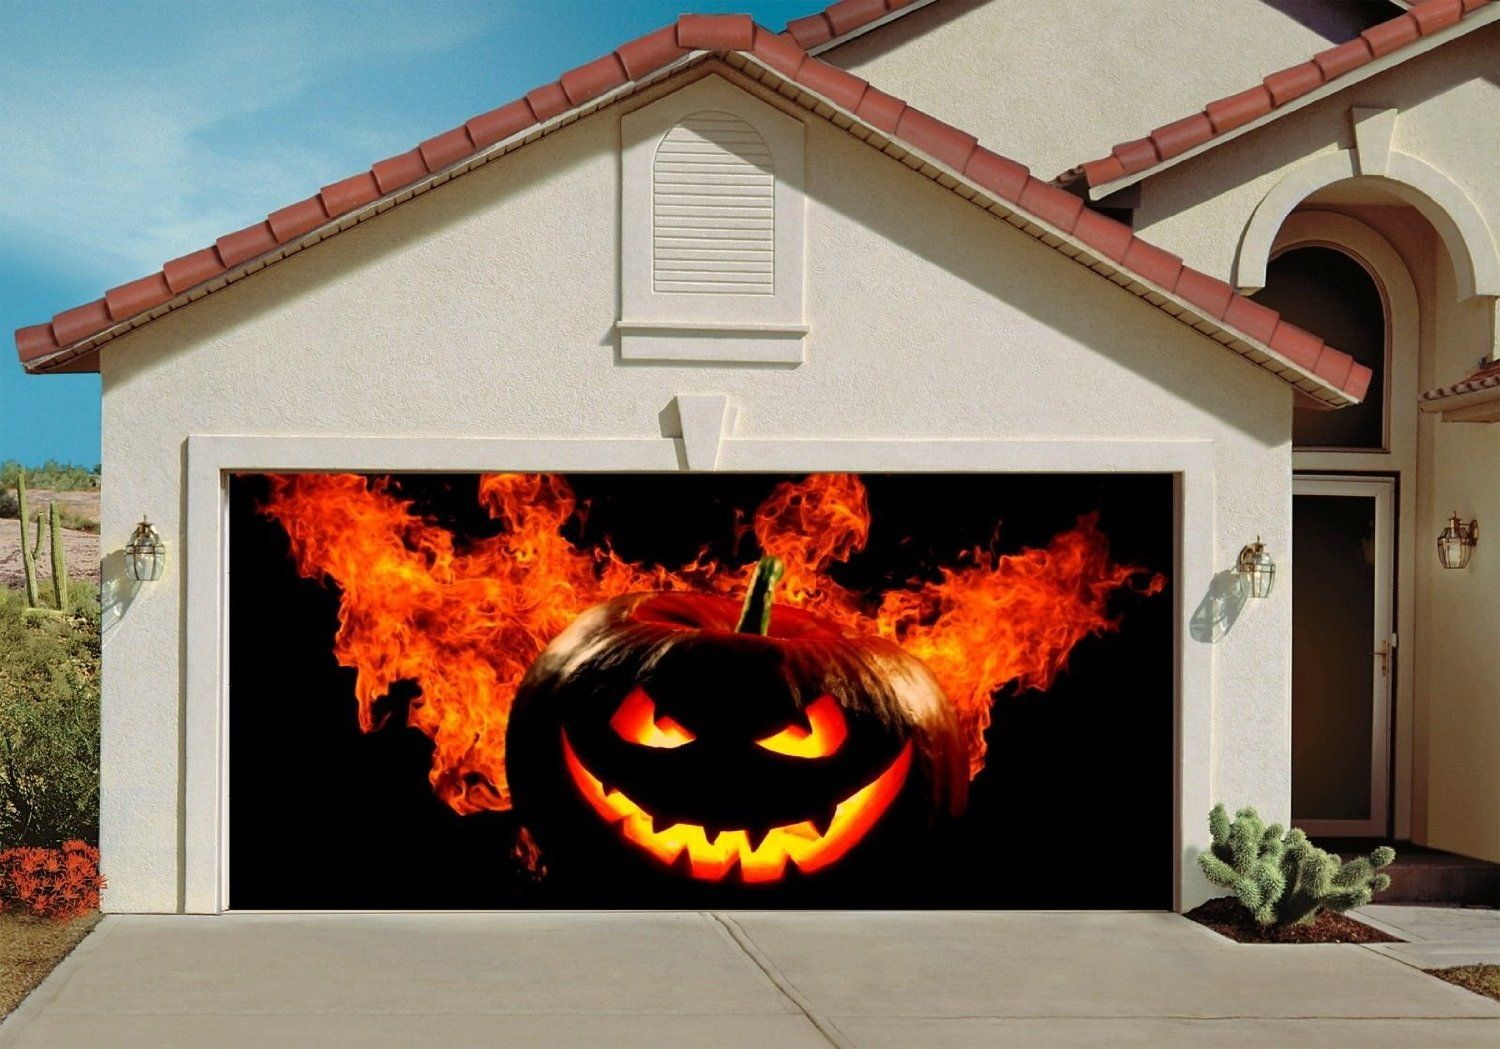 Spooky Porch Decor Kid, Other and The block - Halloween Garage Door Decorations